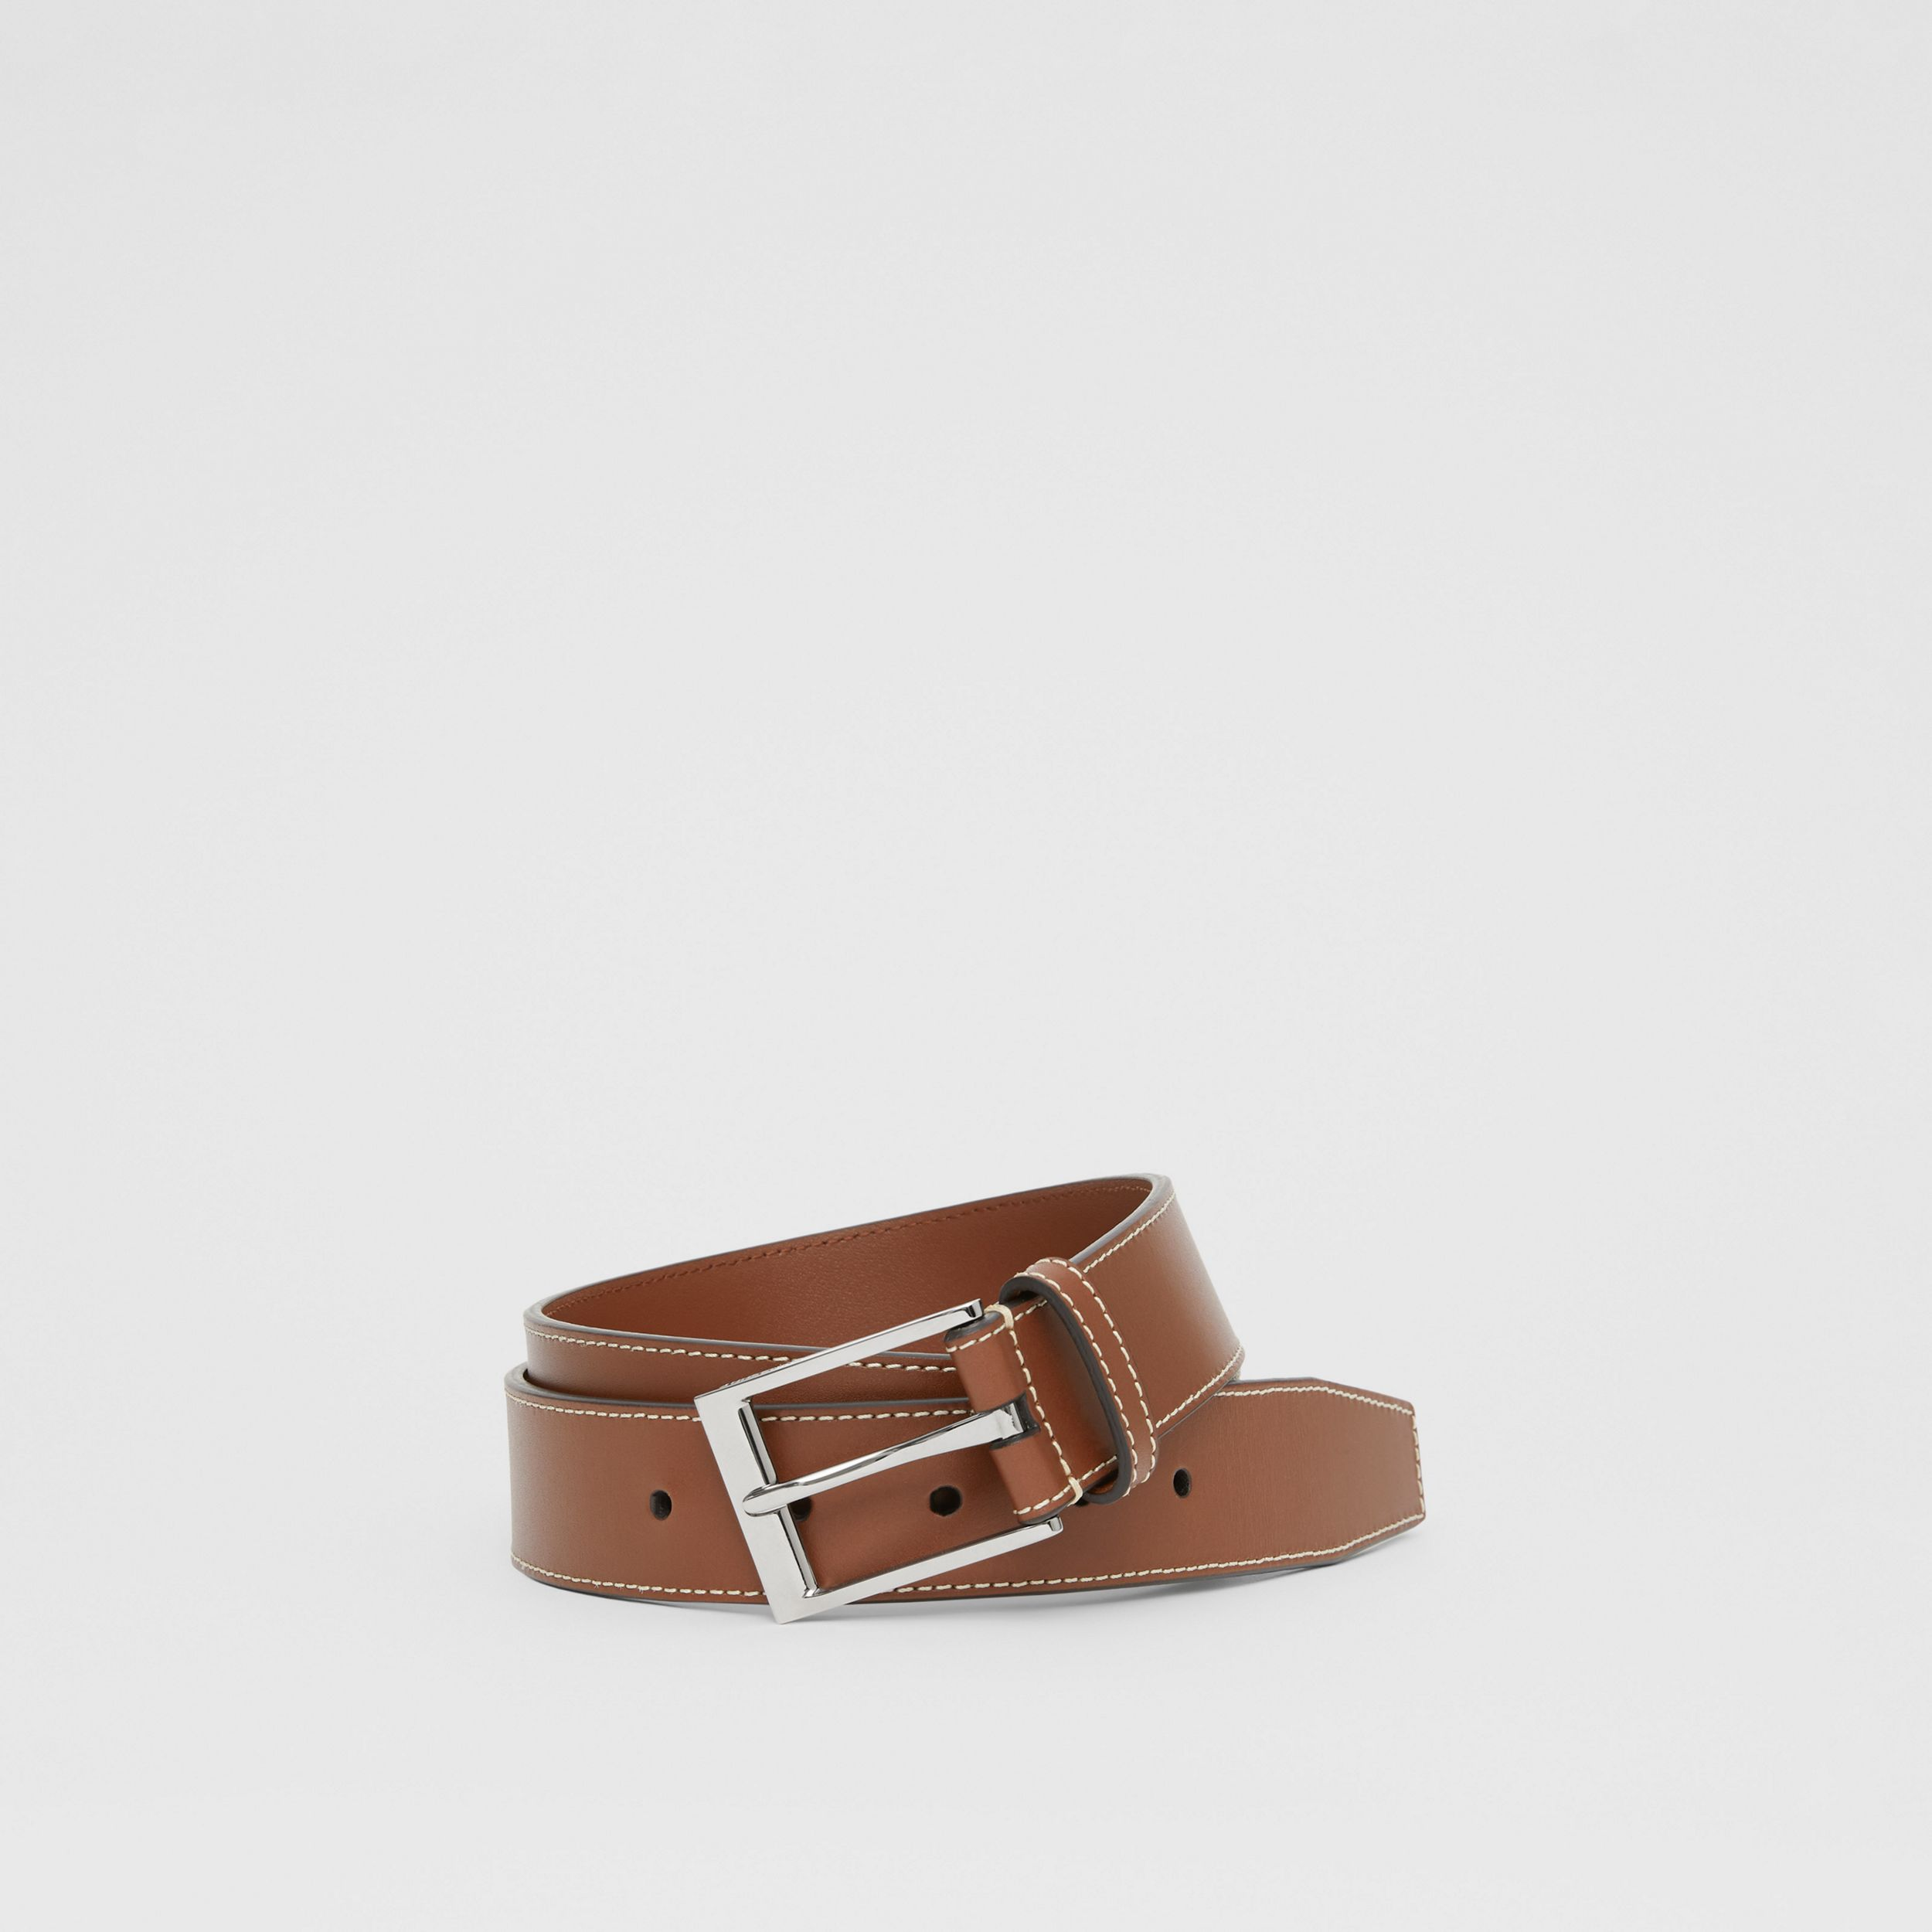 Topstitched Leather Belt in Tan - Men | Burberry - 1